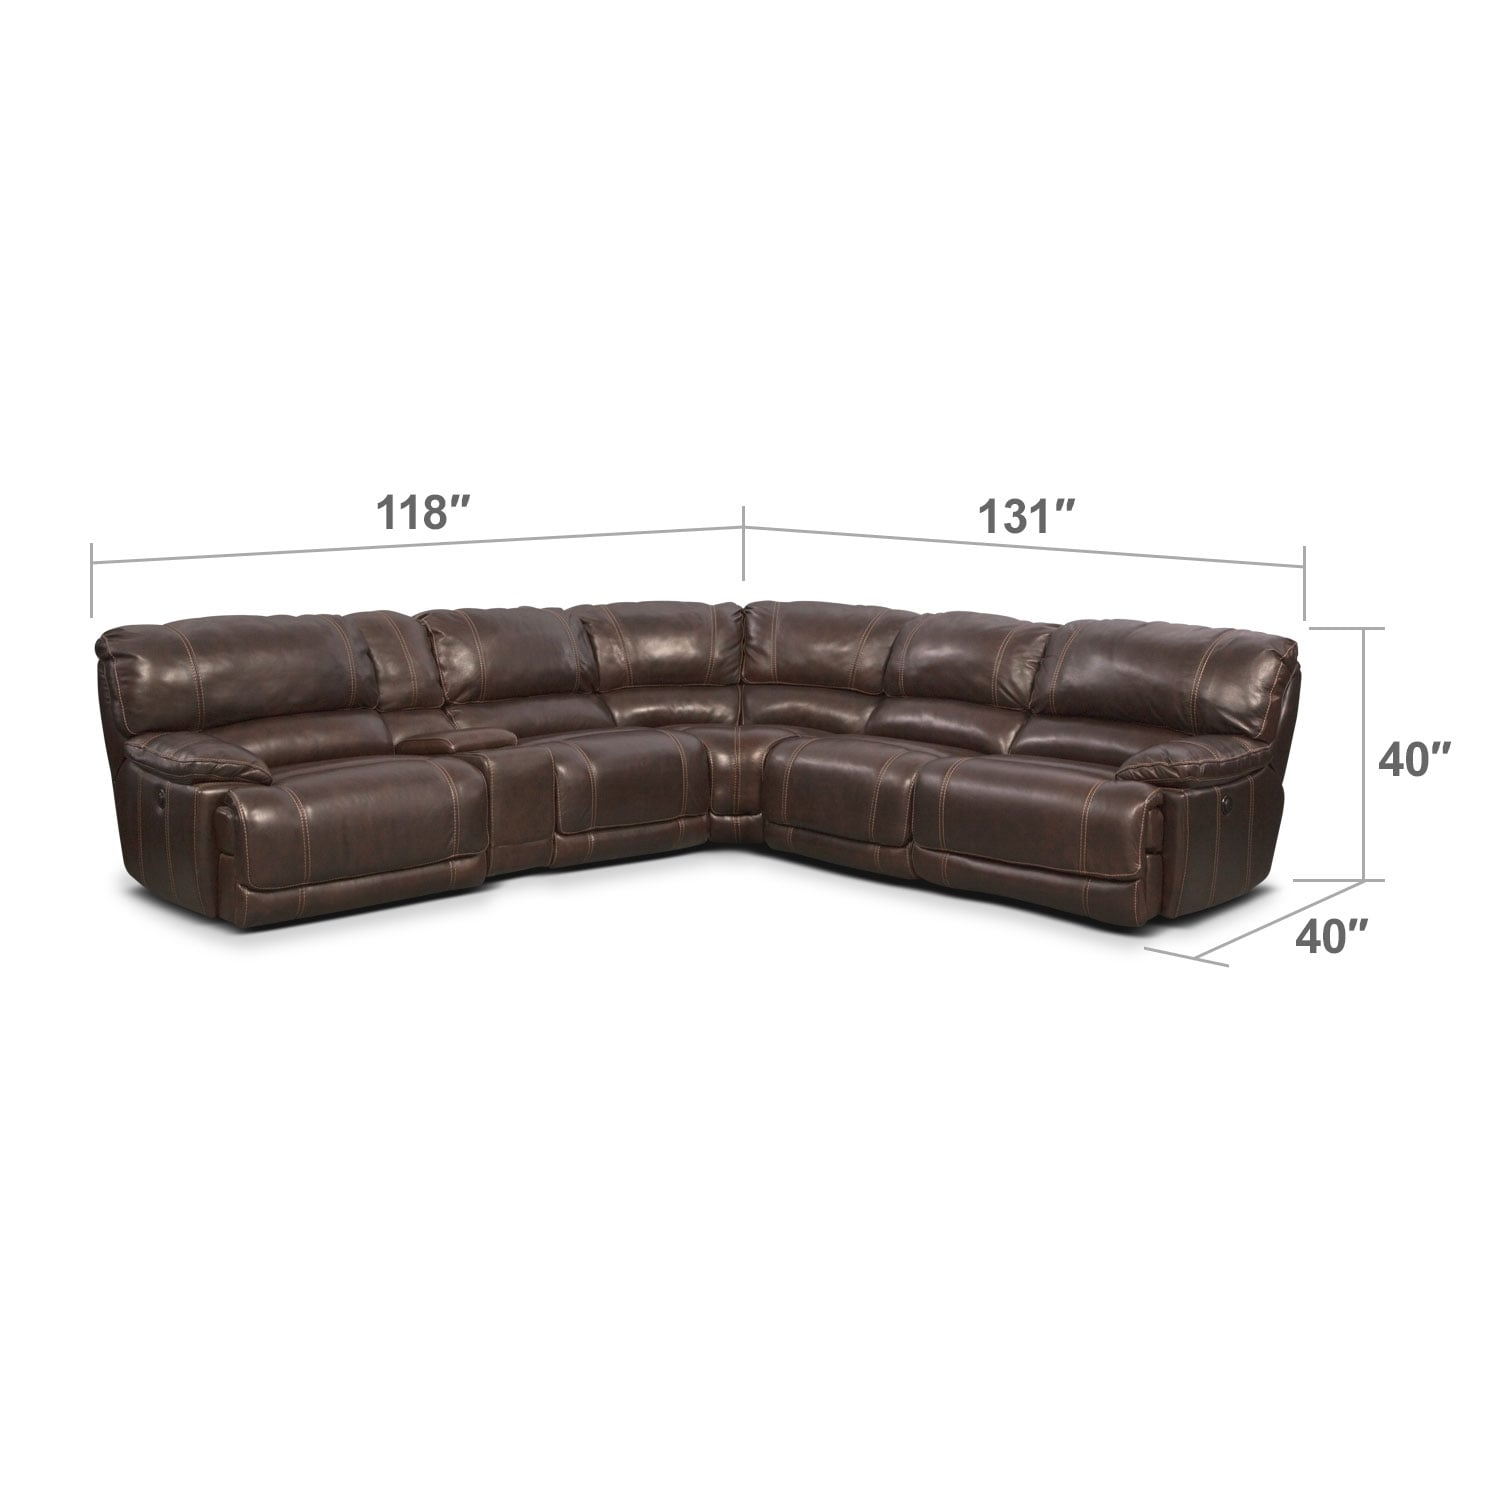 Living Room Furniture - St. Malo 6-Piece Power Reclining Sectional with Modular Console - Brown